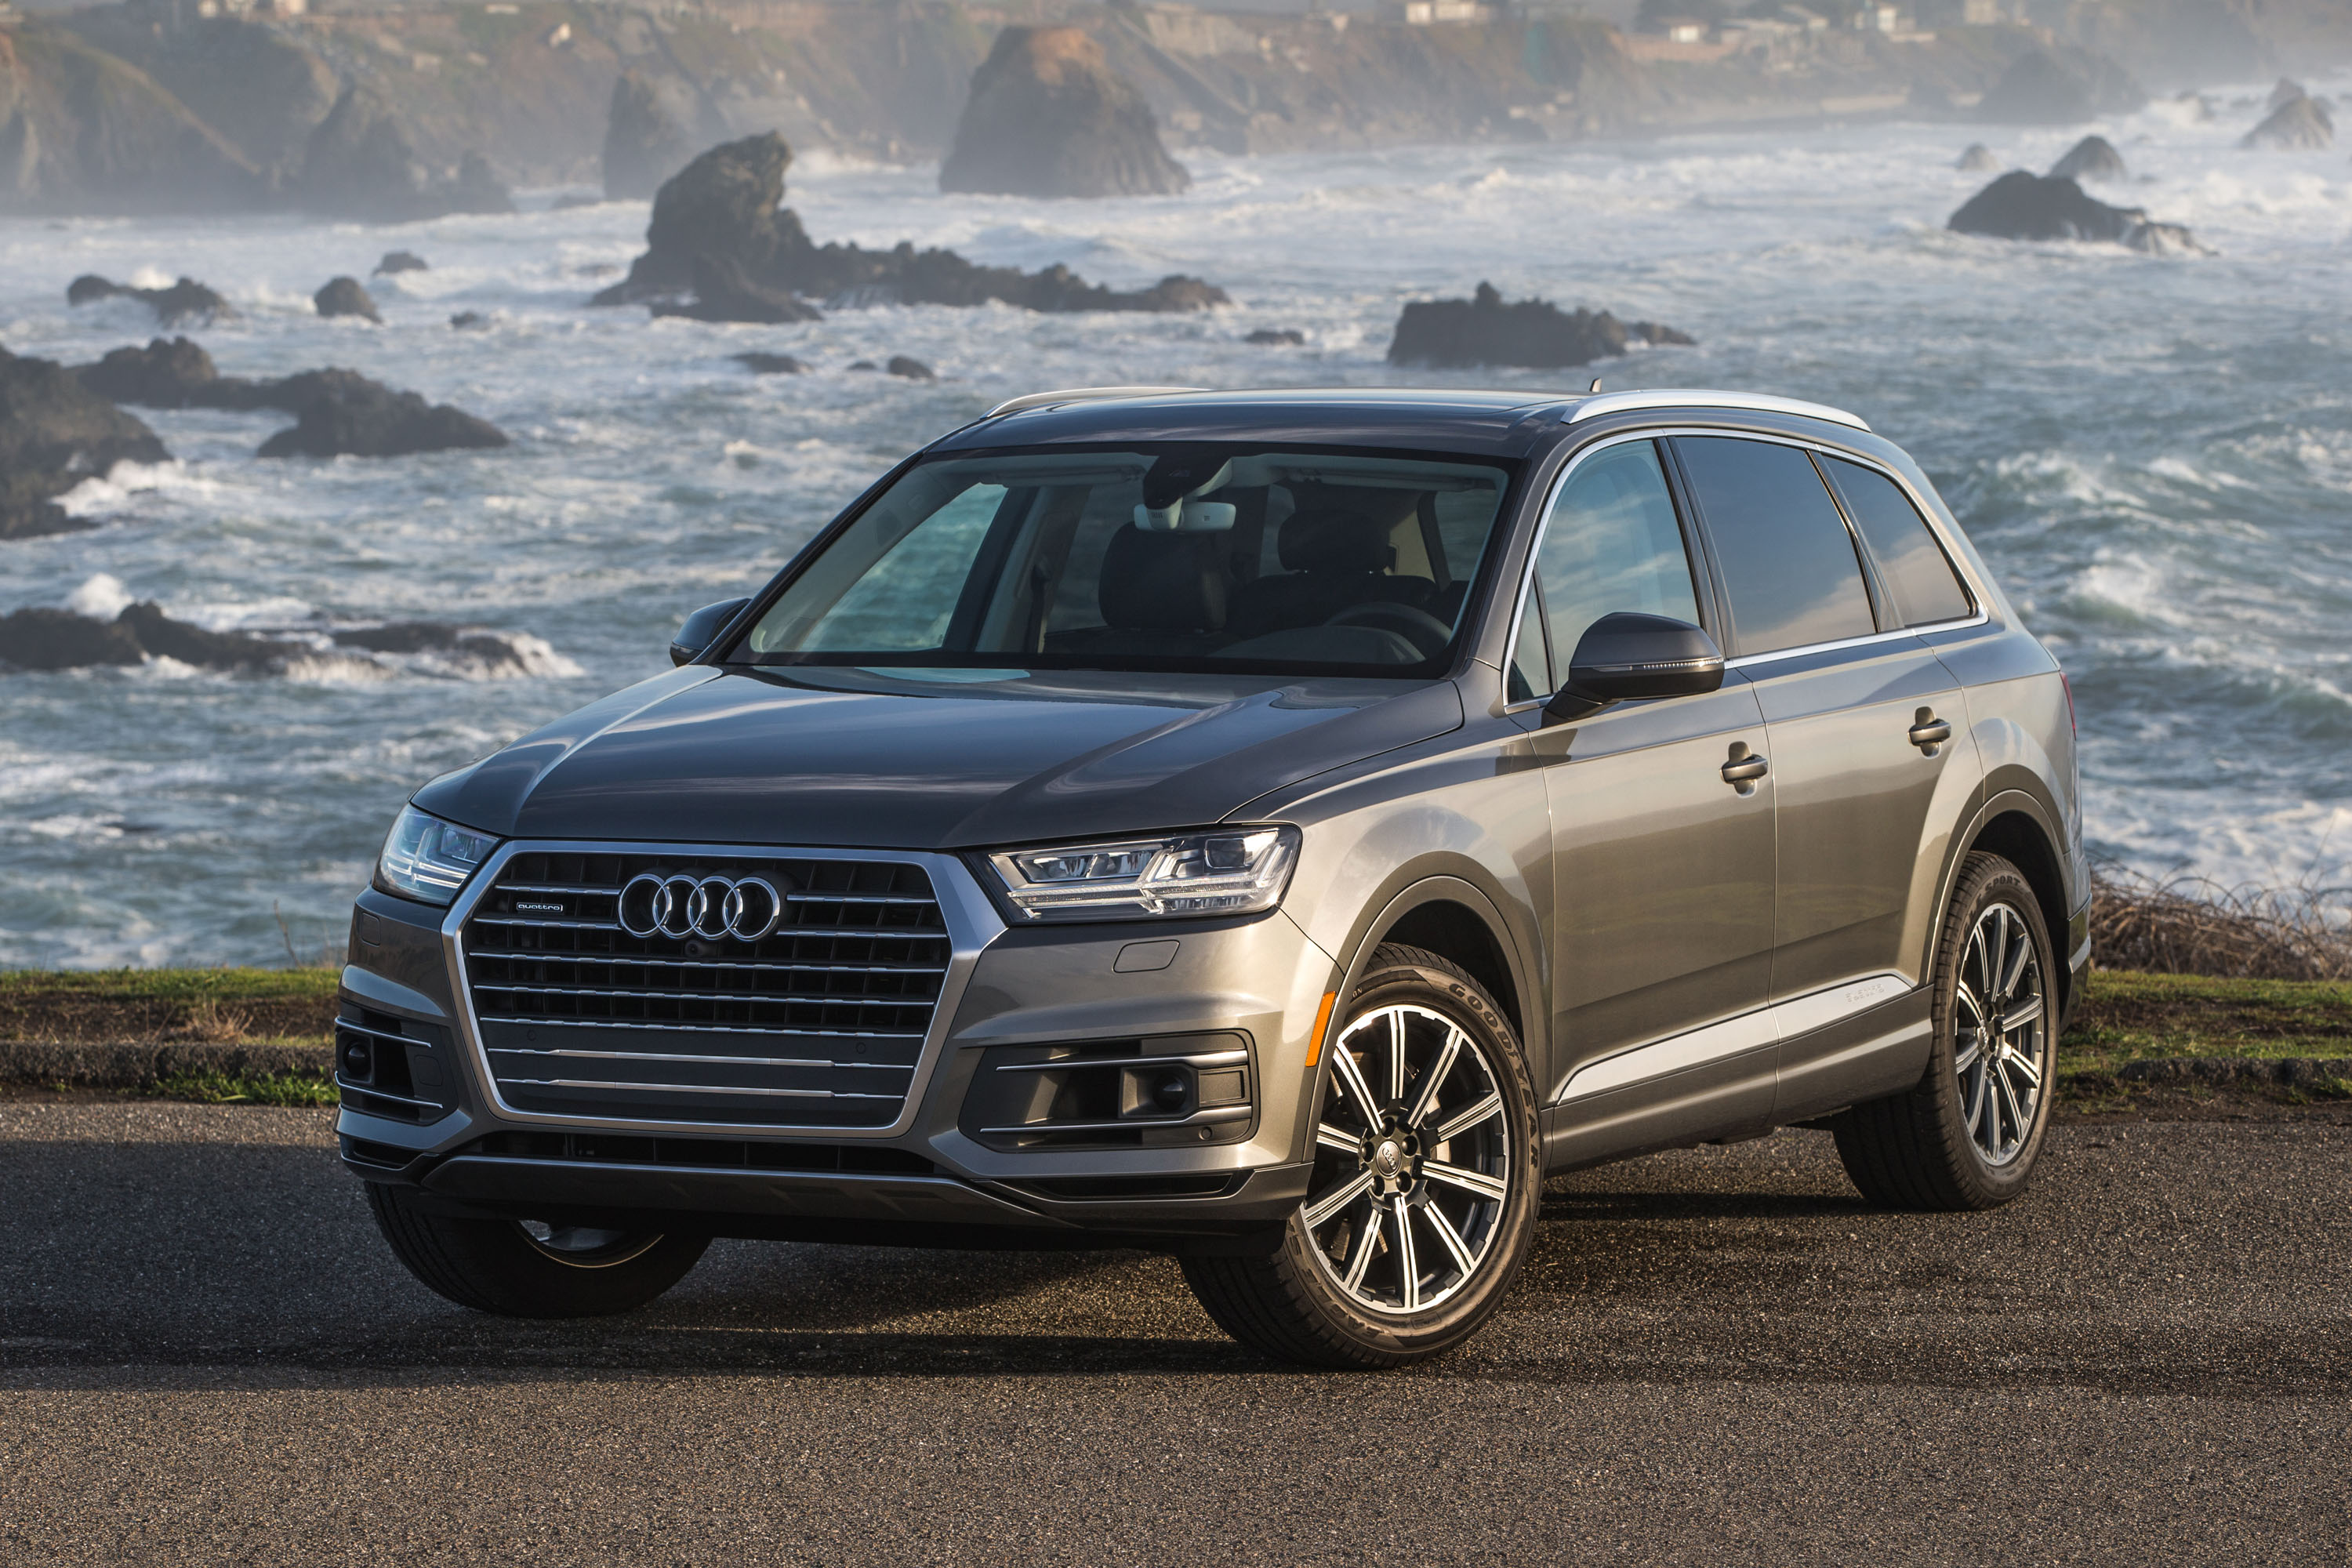 2018 audi q7 premium plus first drive review. Black Bedroom Furniture Sets. Home Design Ideas